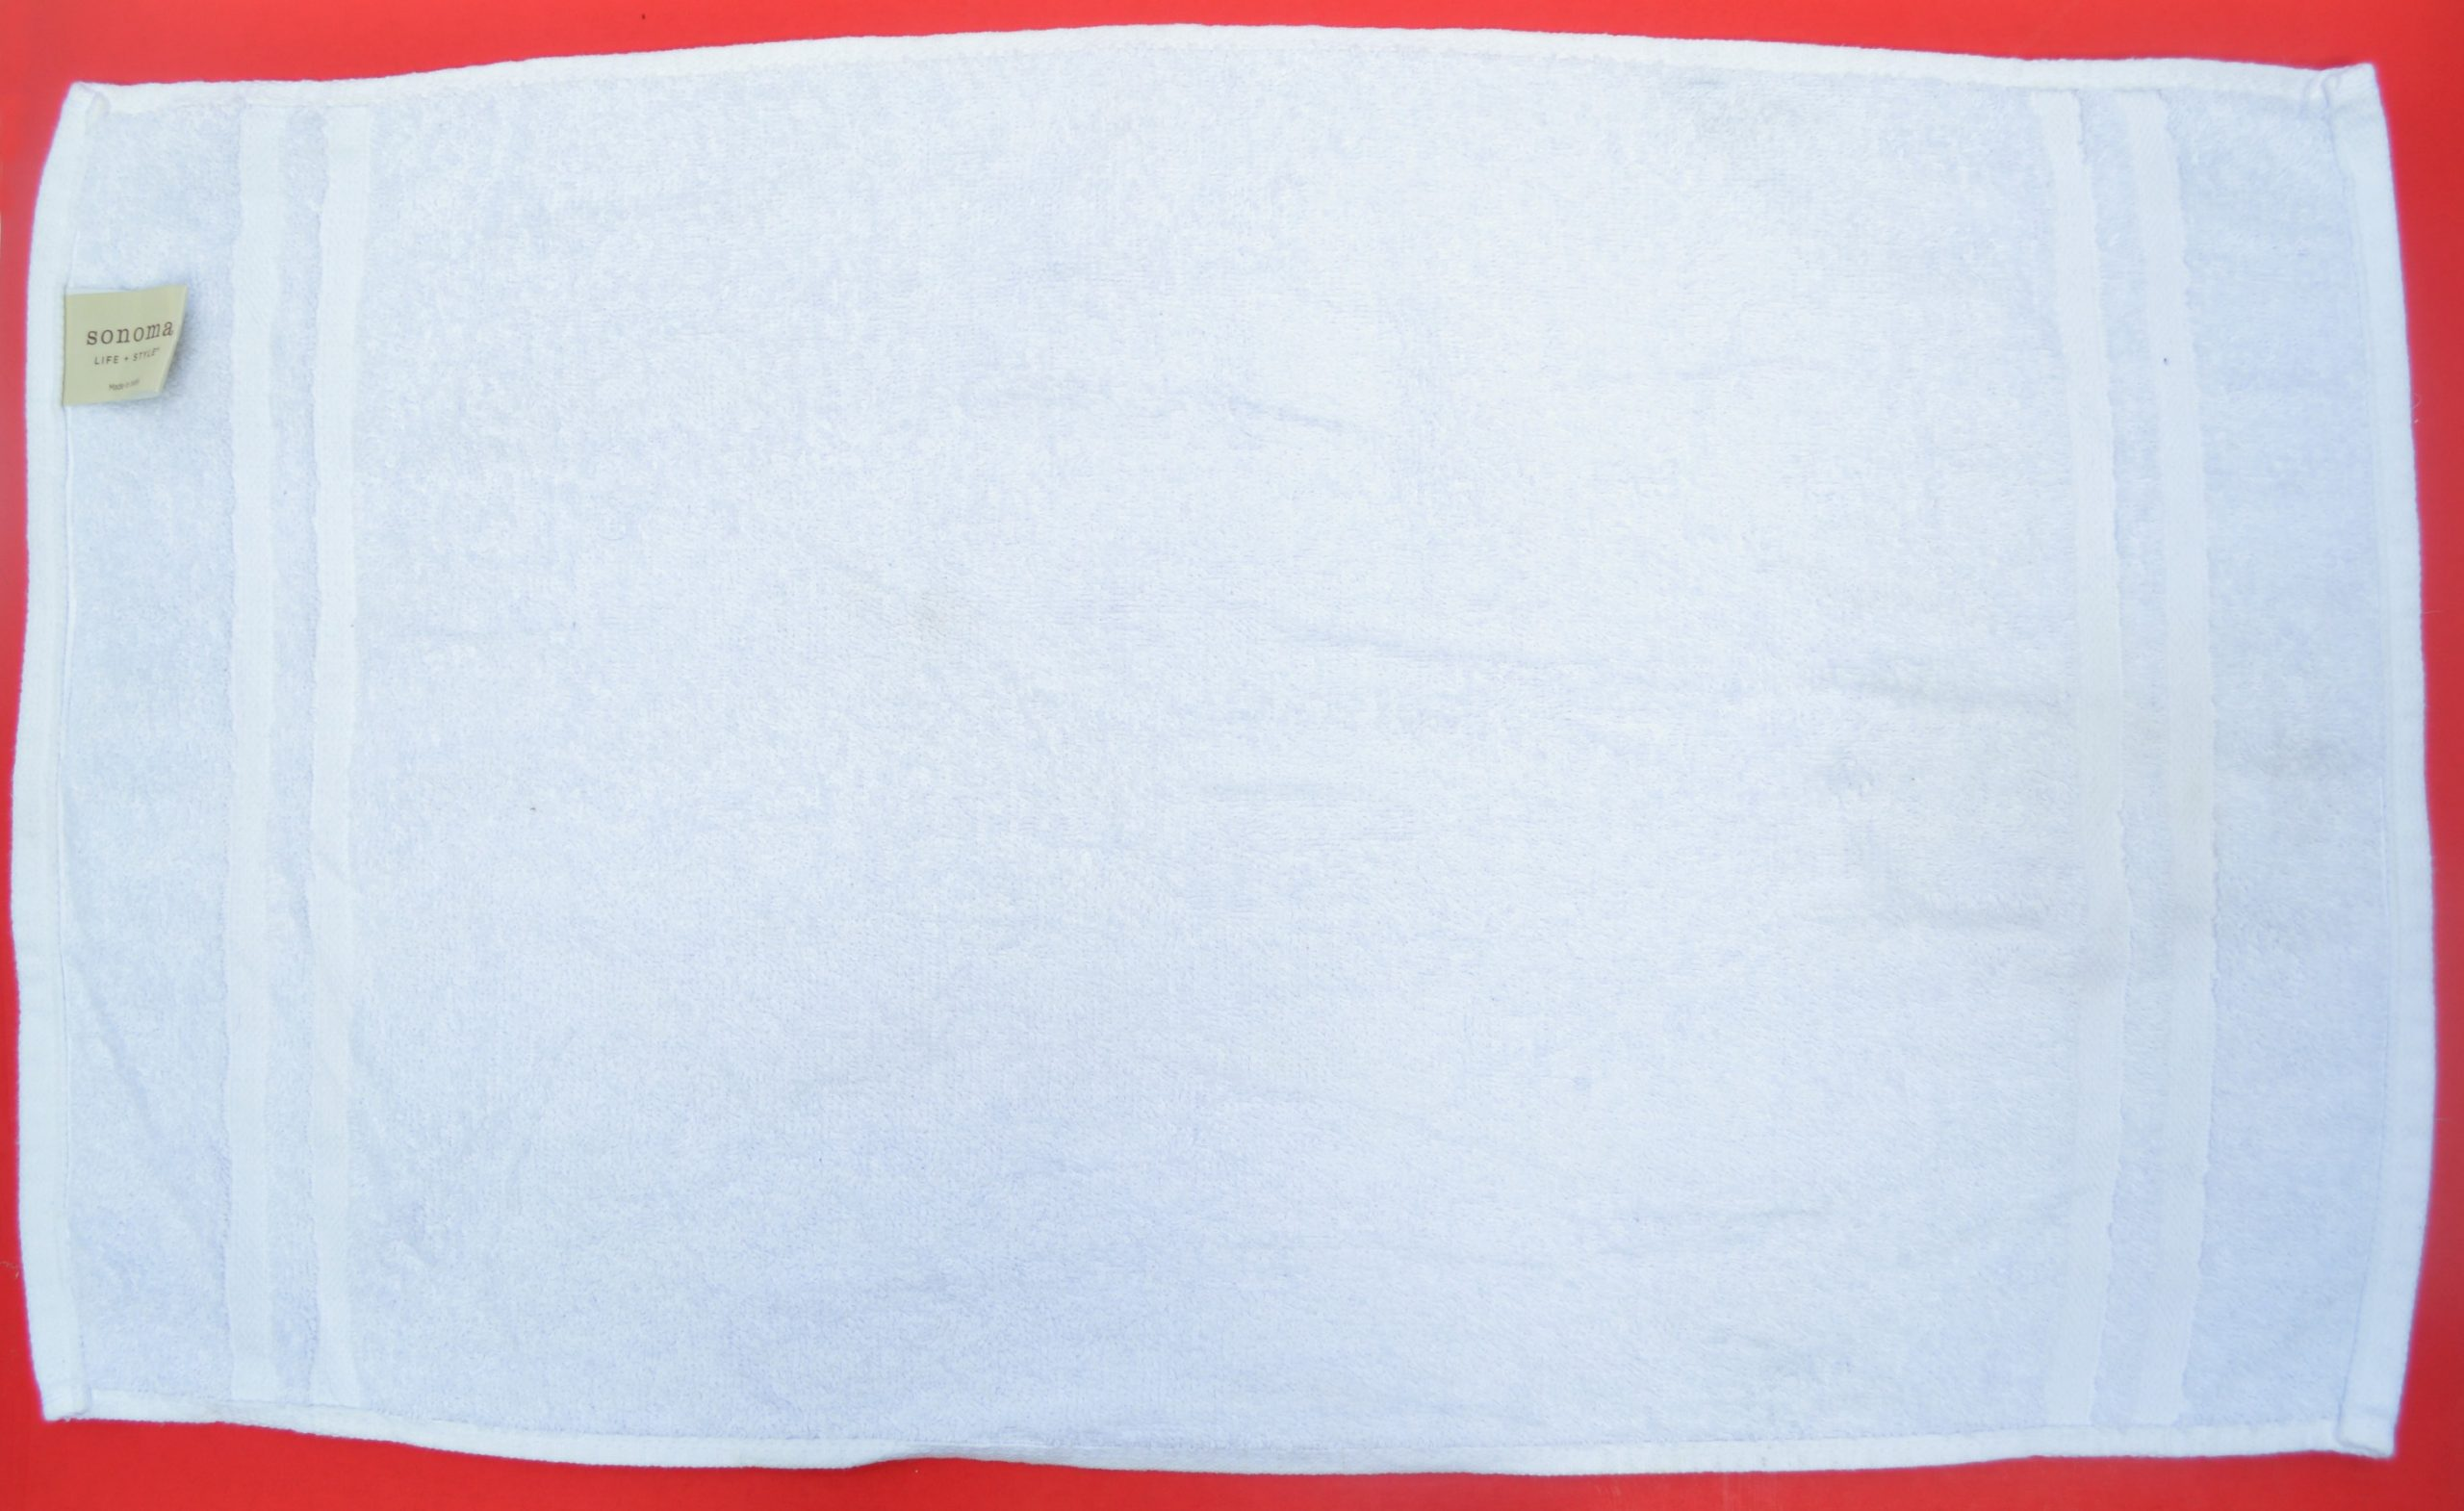 white towel on a red background